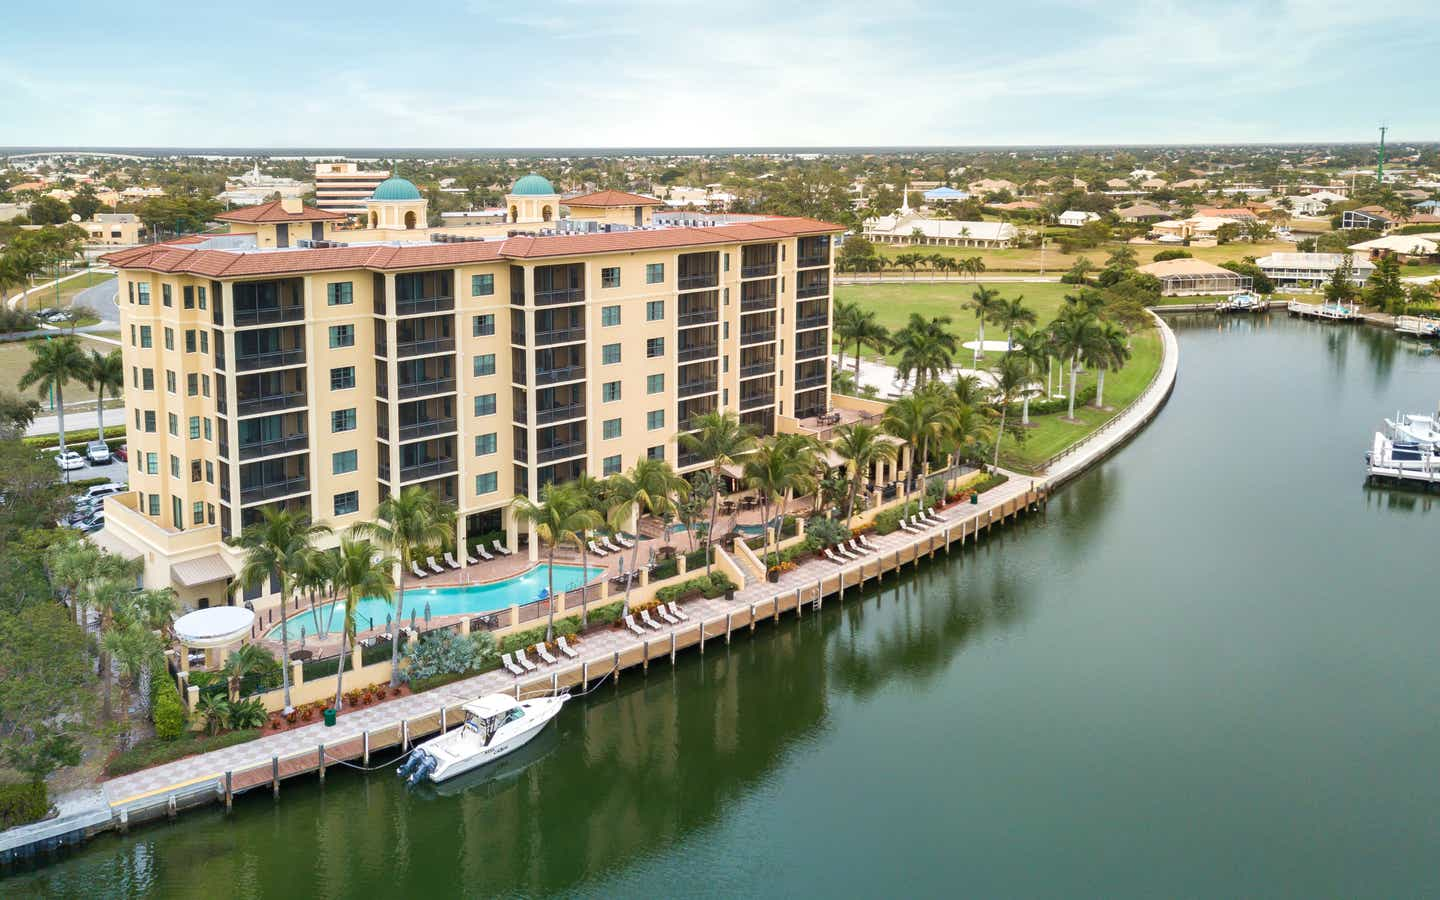 Aerial view of Sunset Cove Resort in Marco Island, FL